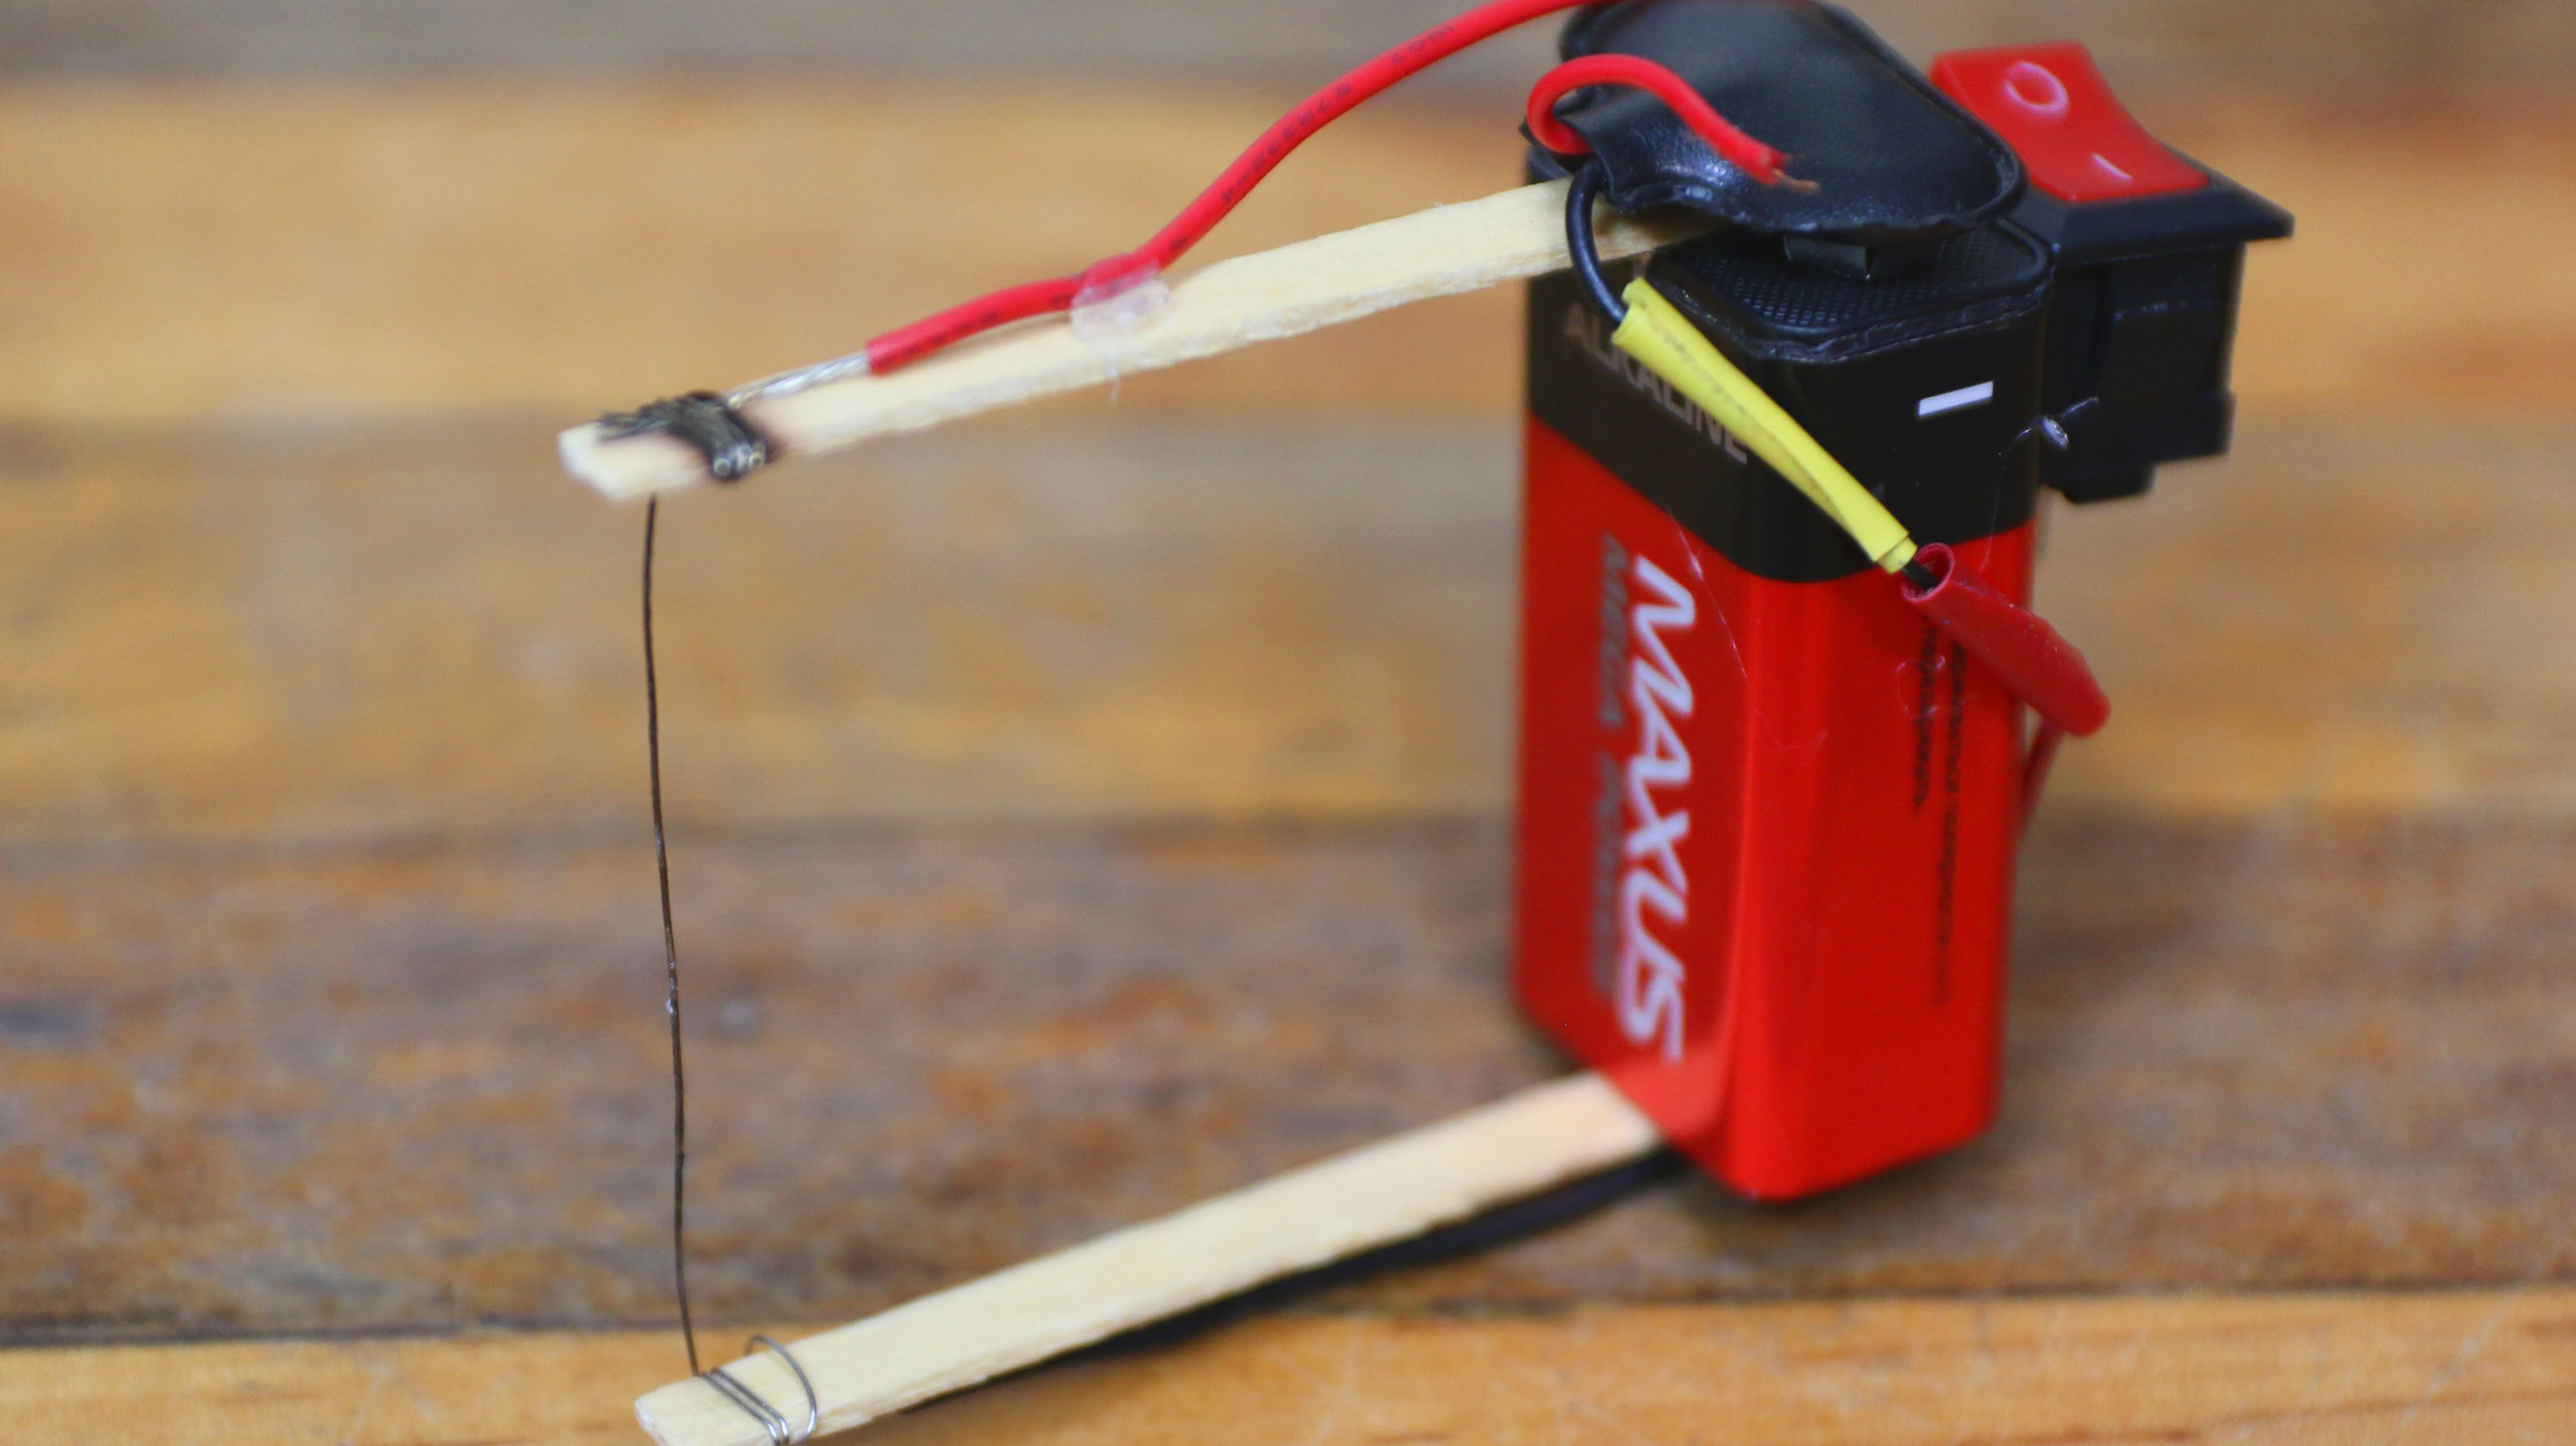 How To Build A Simple Diy Plastic Foam Cutter Using Nine Volt Battery And Some Wire